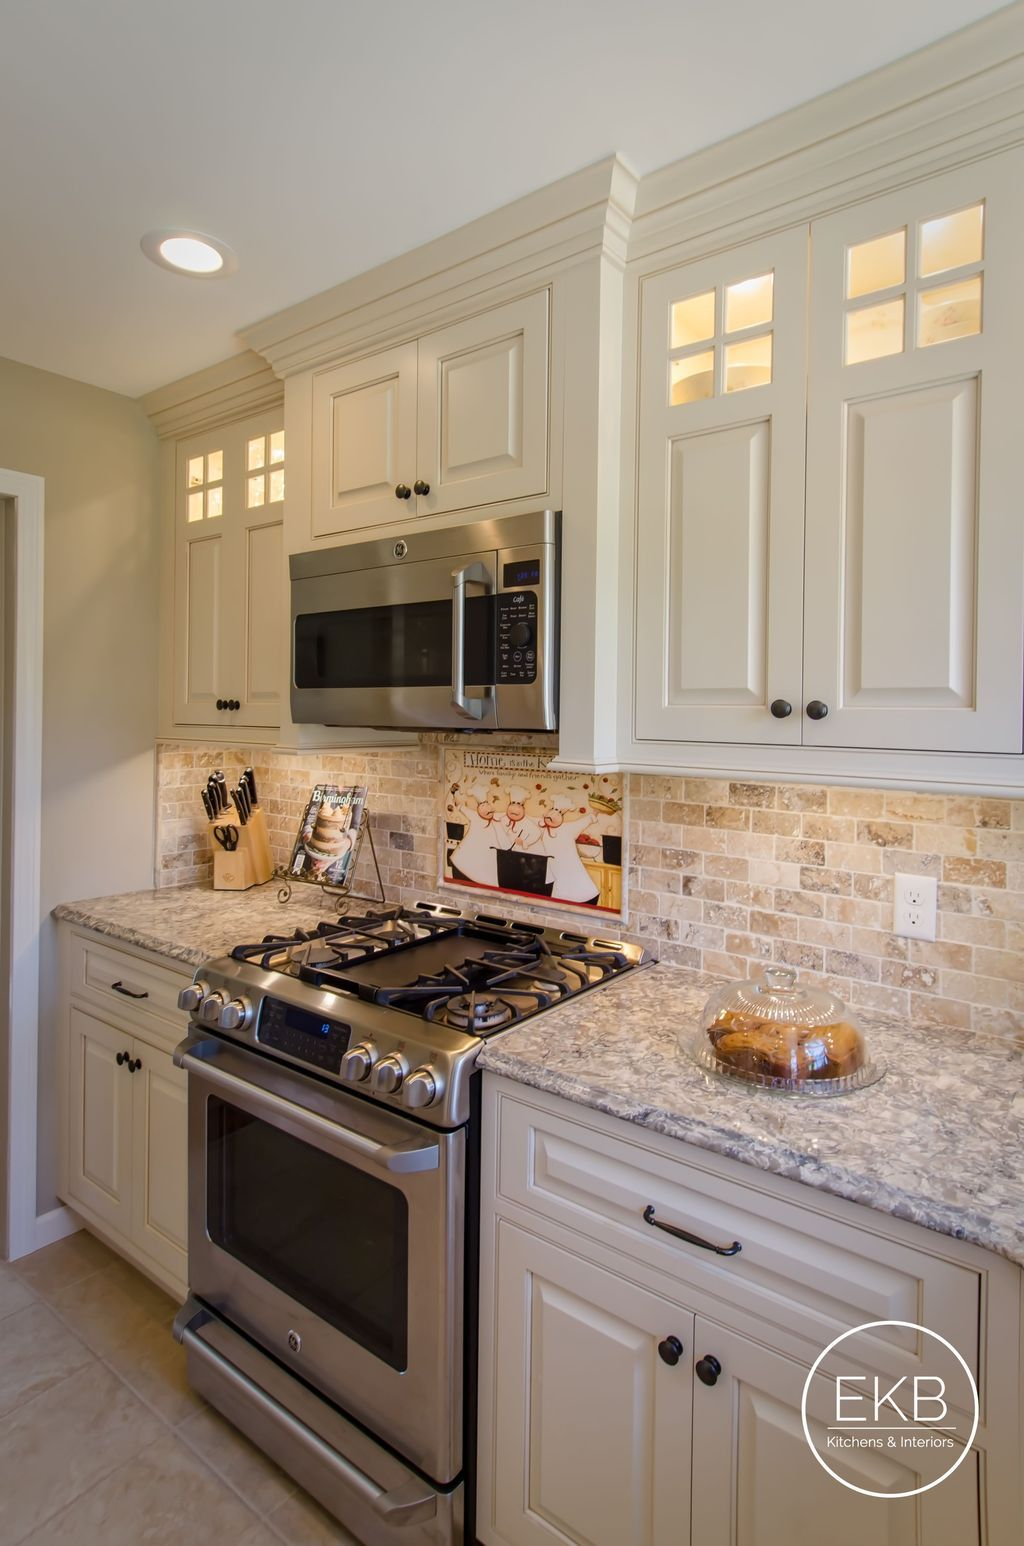 10x10 Kitchen Cabinets: 35+ Charming Kitchen Cabinet Decorating Ideas In 2020